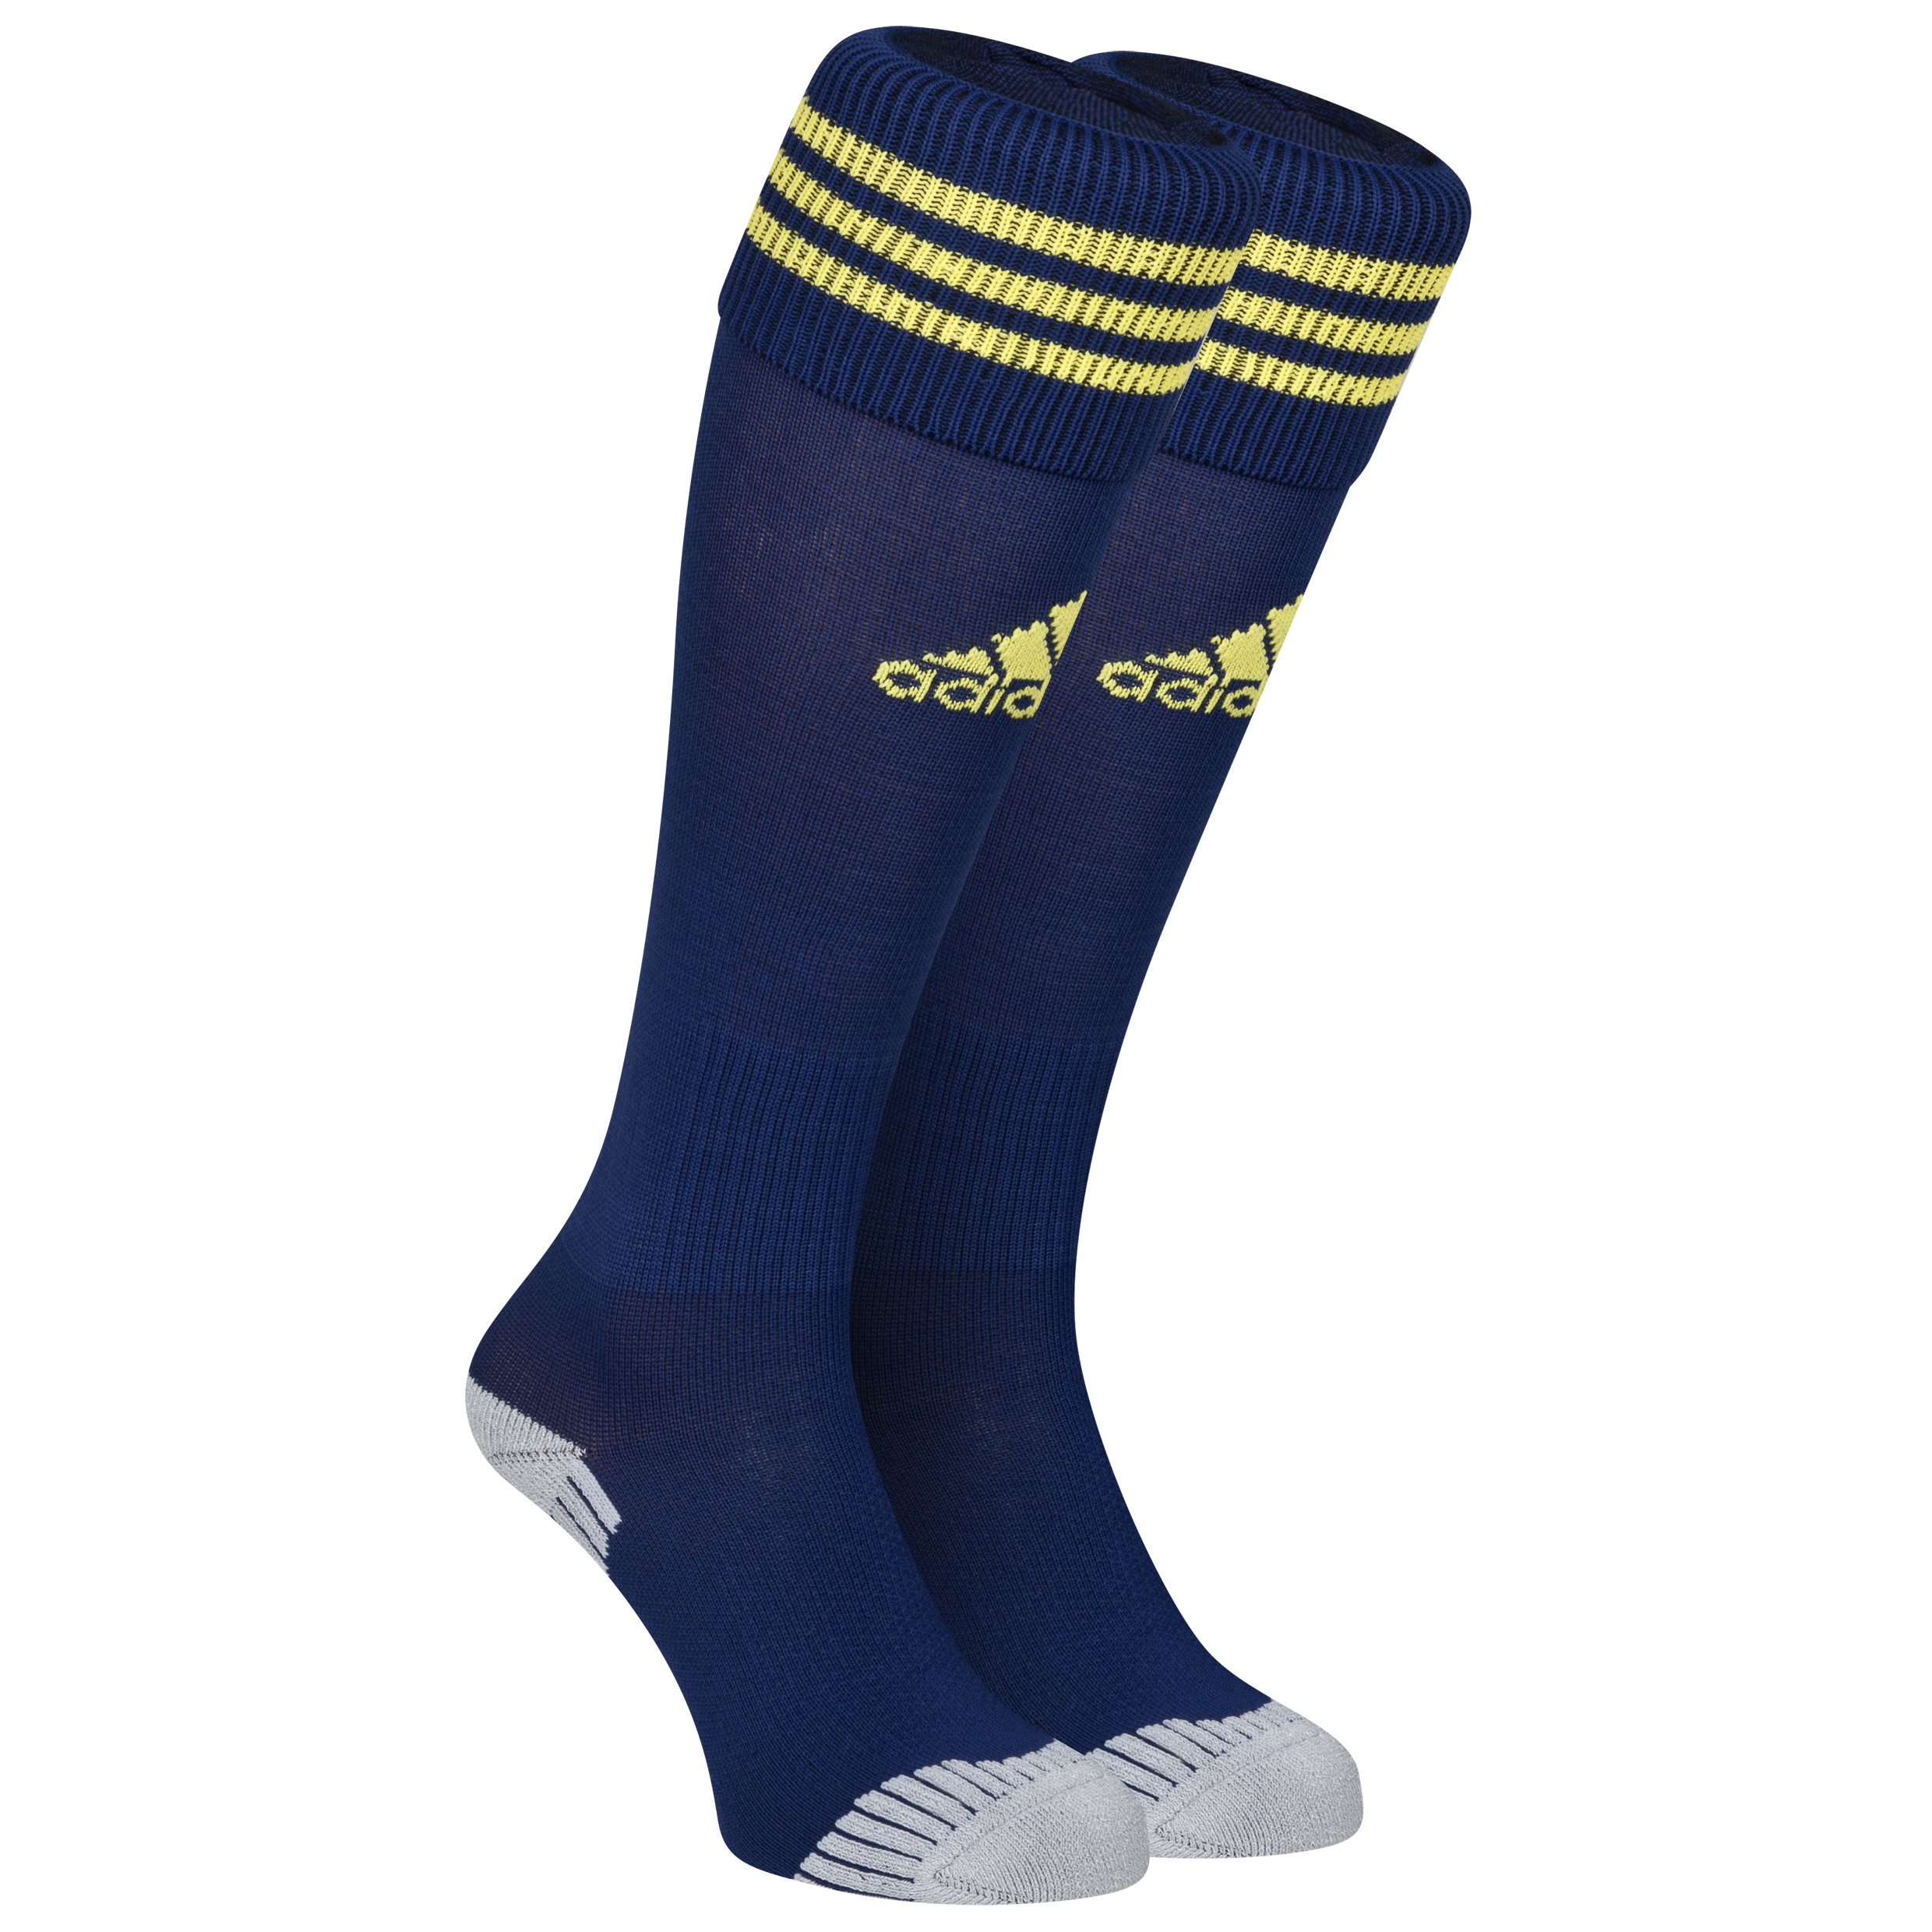 Sunderland Away Socks 2013/14